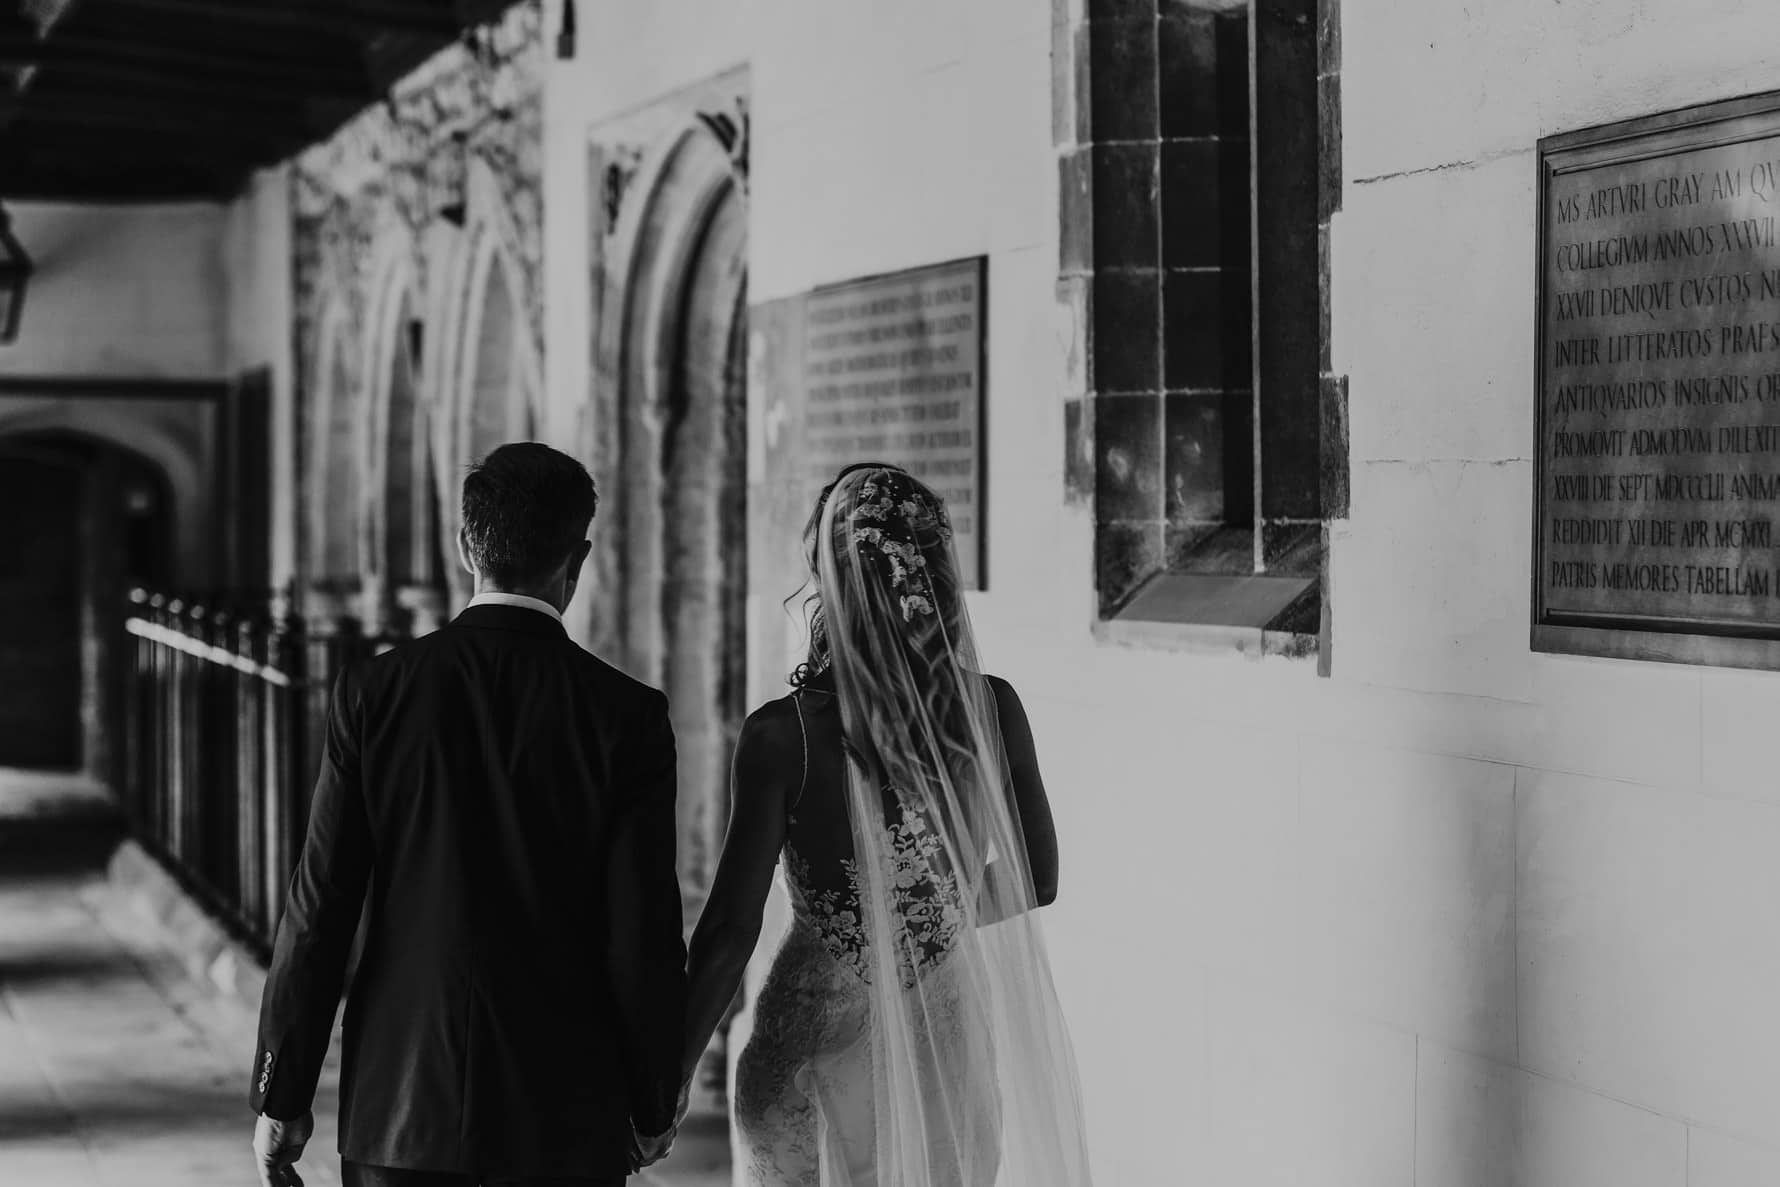 Bride and groom walking out of a ceremony at Jesus College